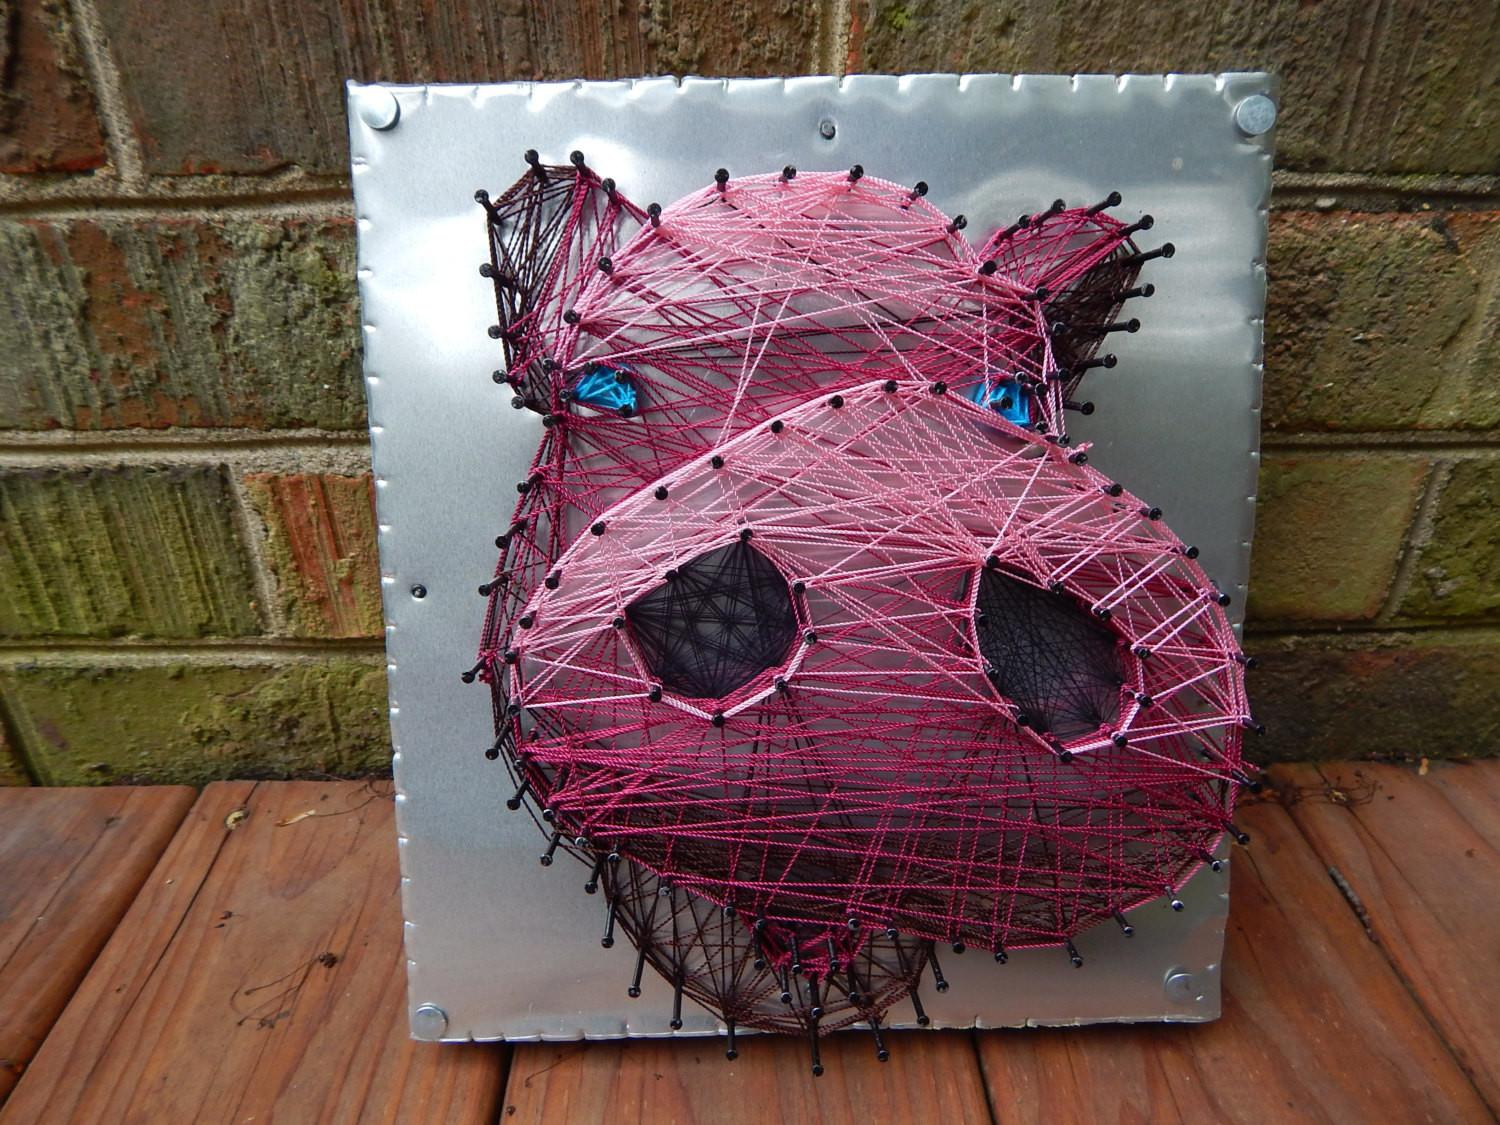 Pink Pig Nose String Art Upcycled Wood Aluminum Base Vegan